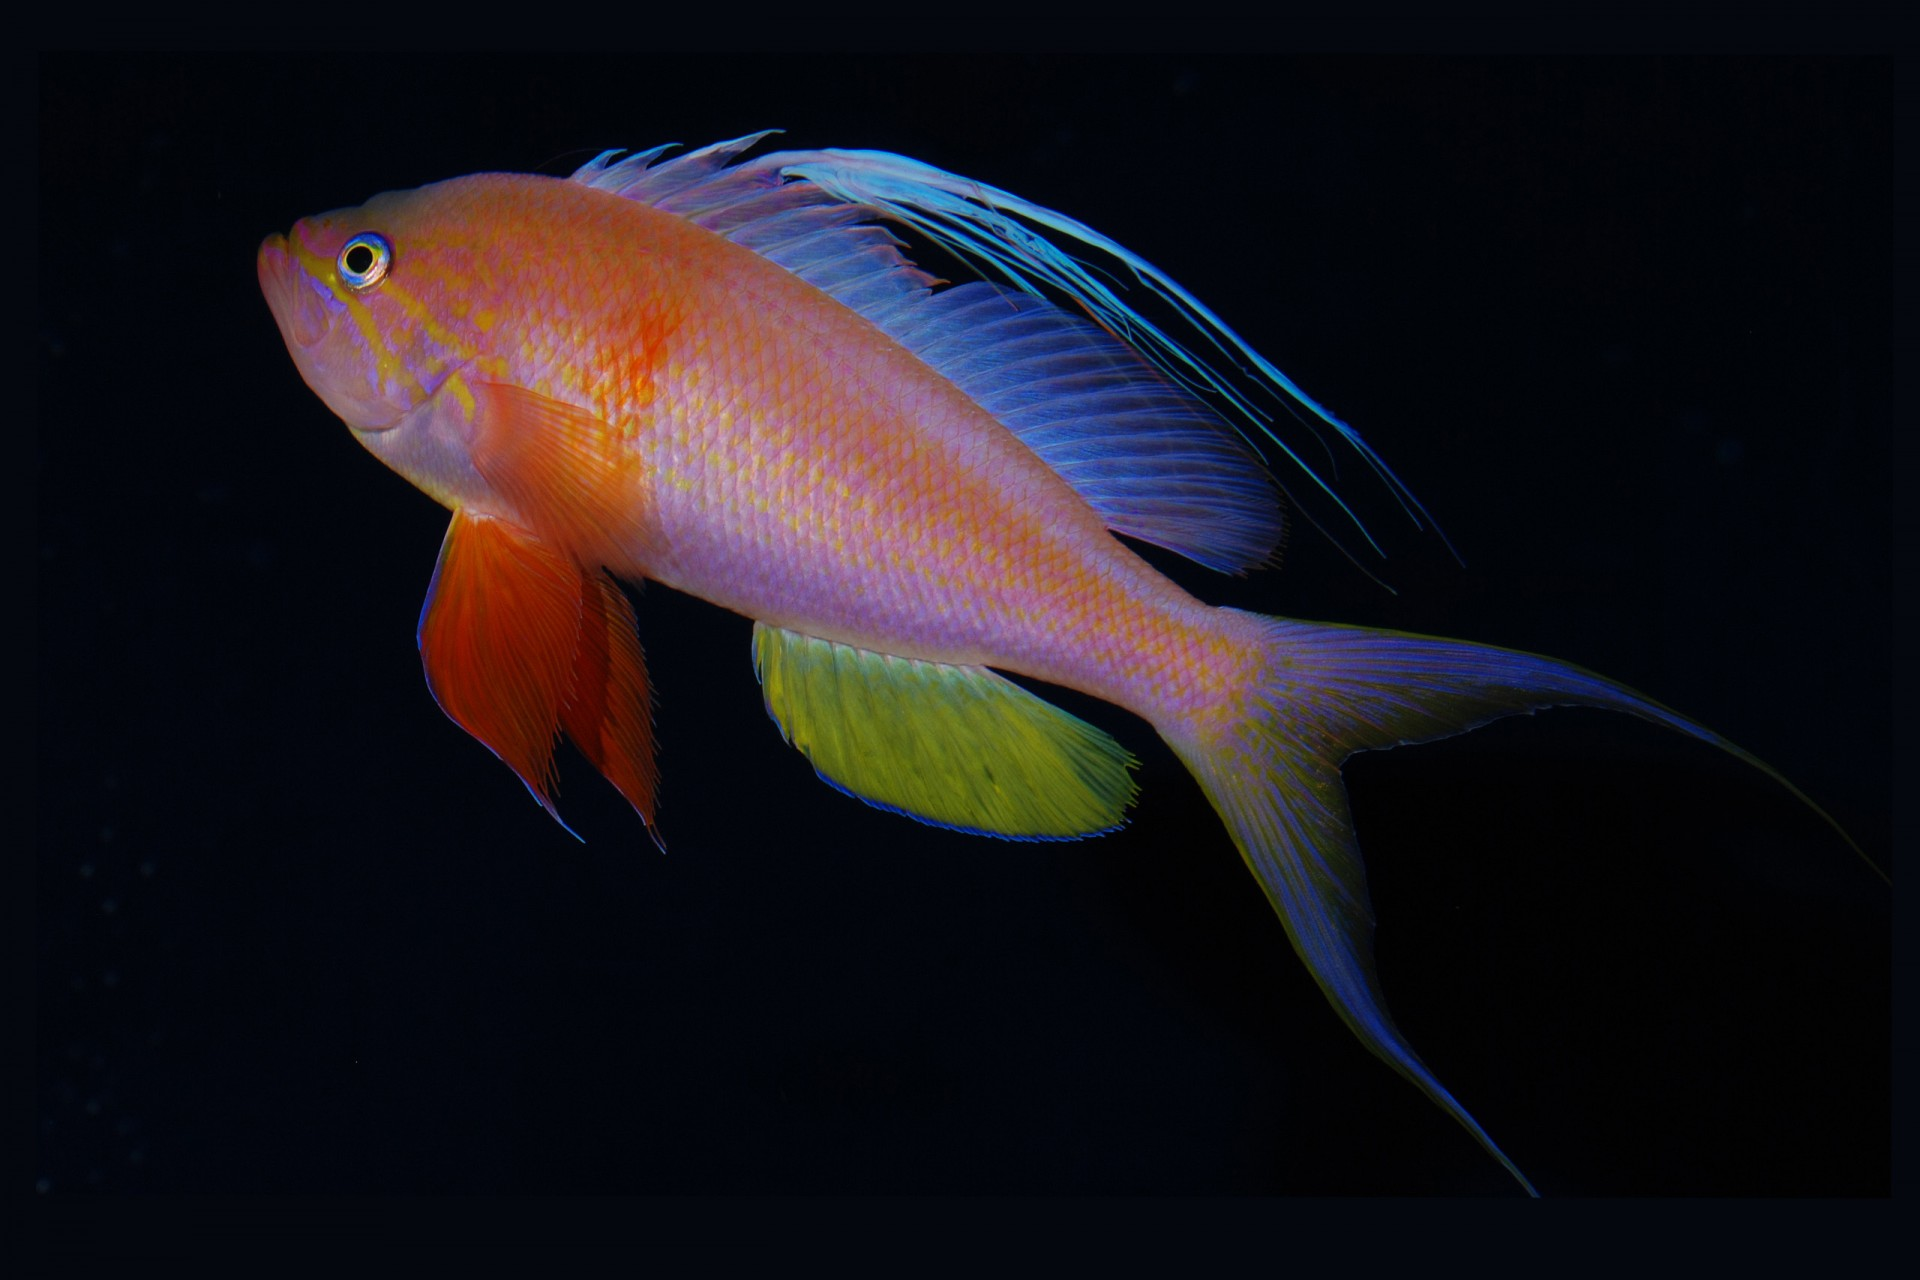 Baldwinella vivanos, one of STRI staff scientist D. Ross Robertson's favorite new fish species discovered in the rariphotic